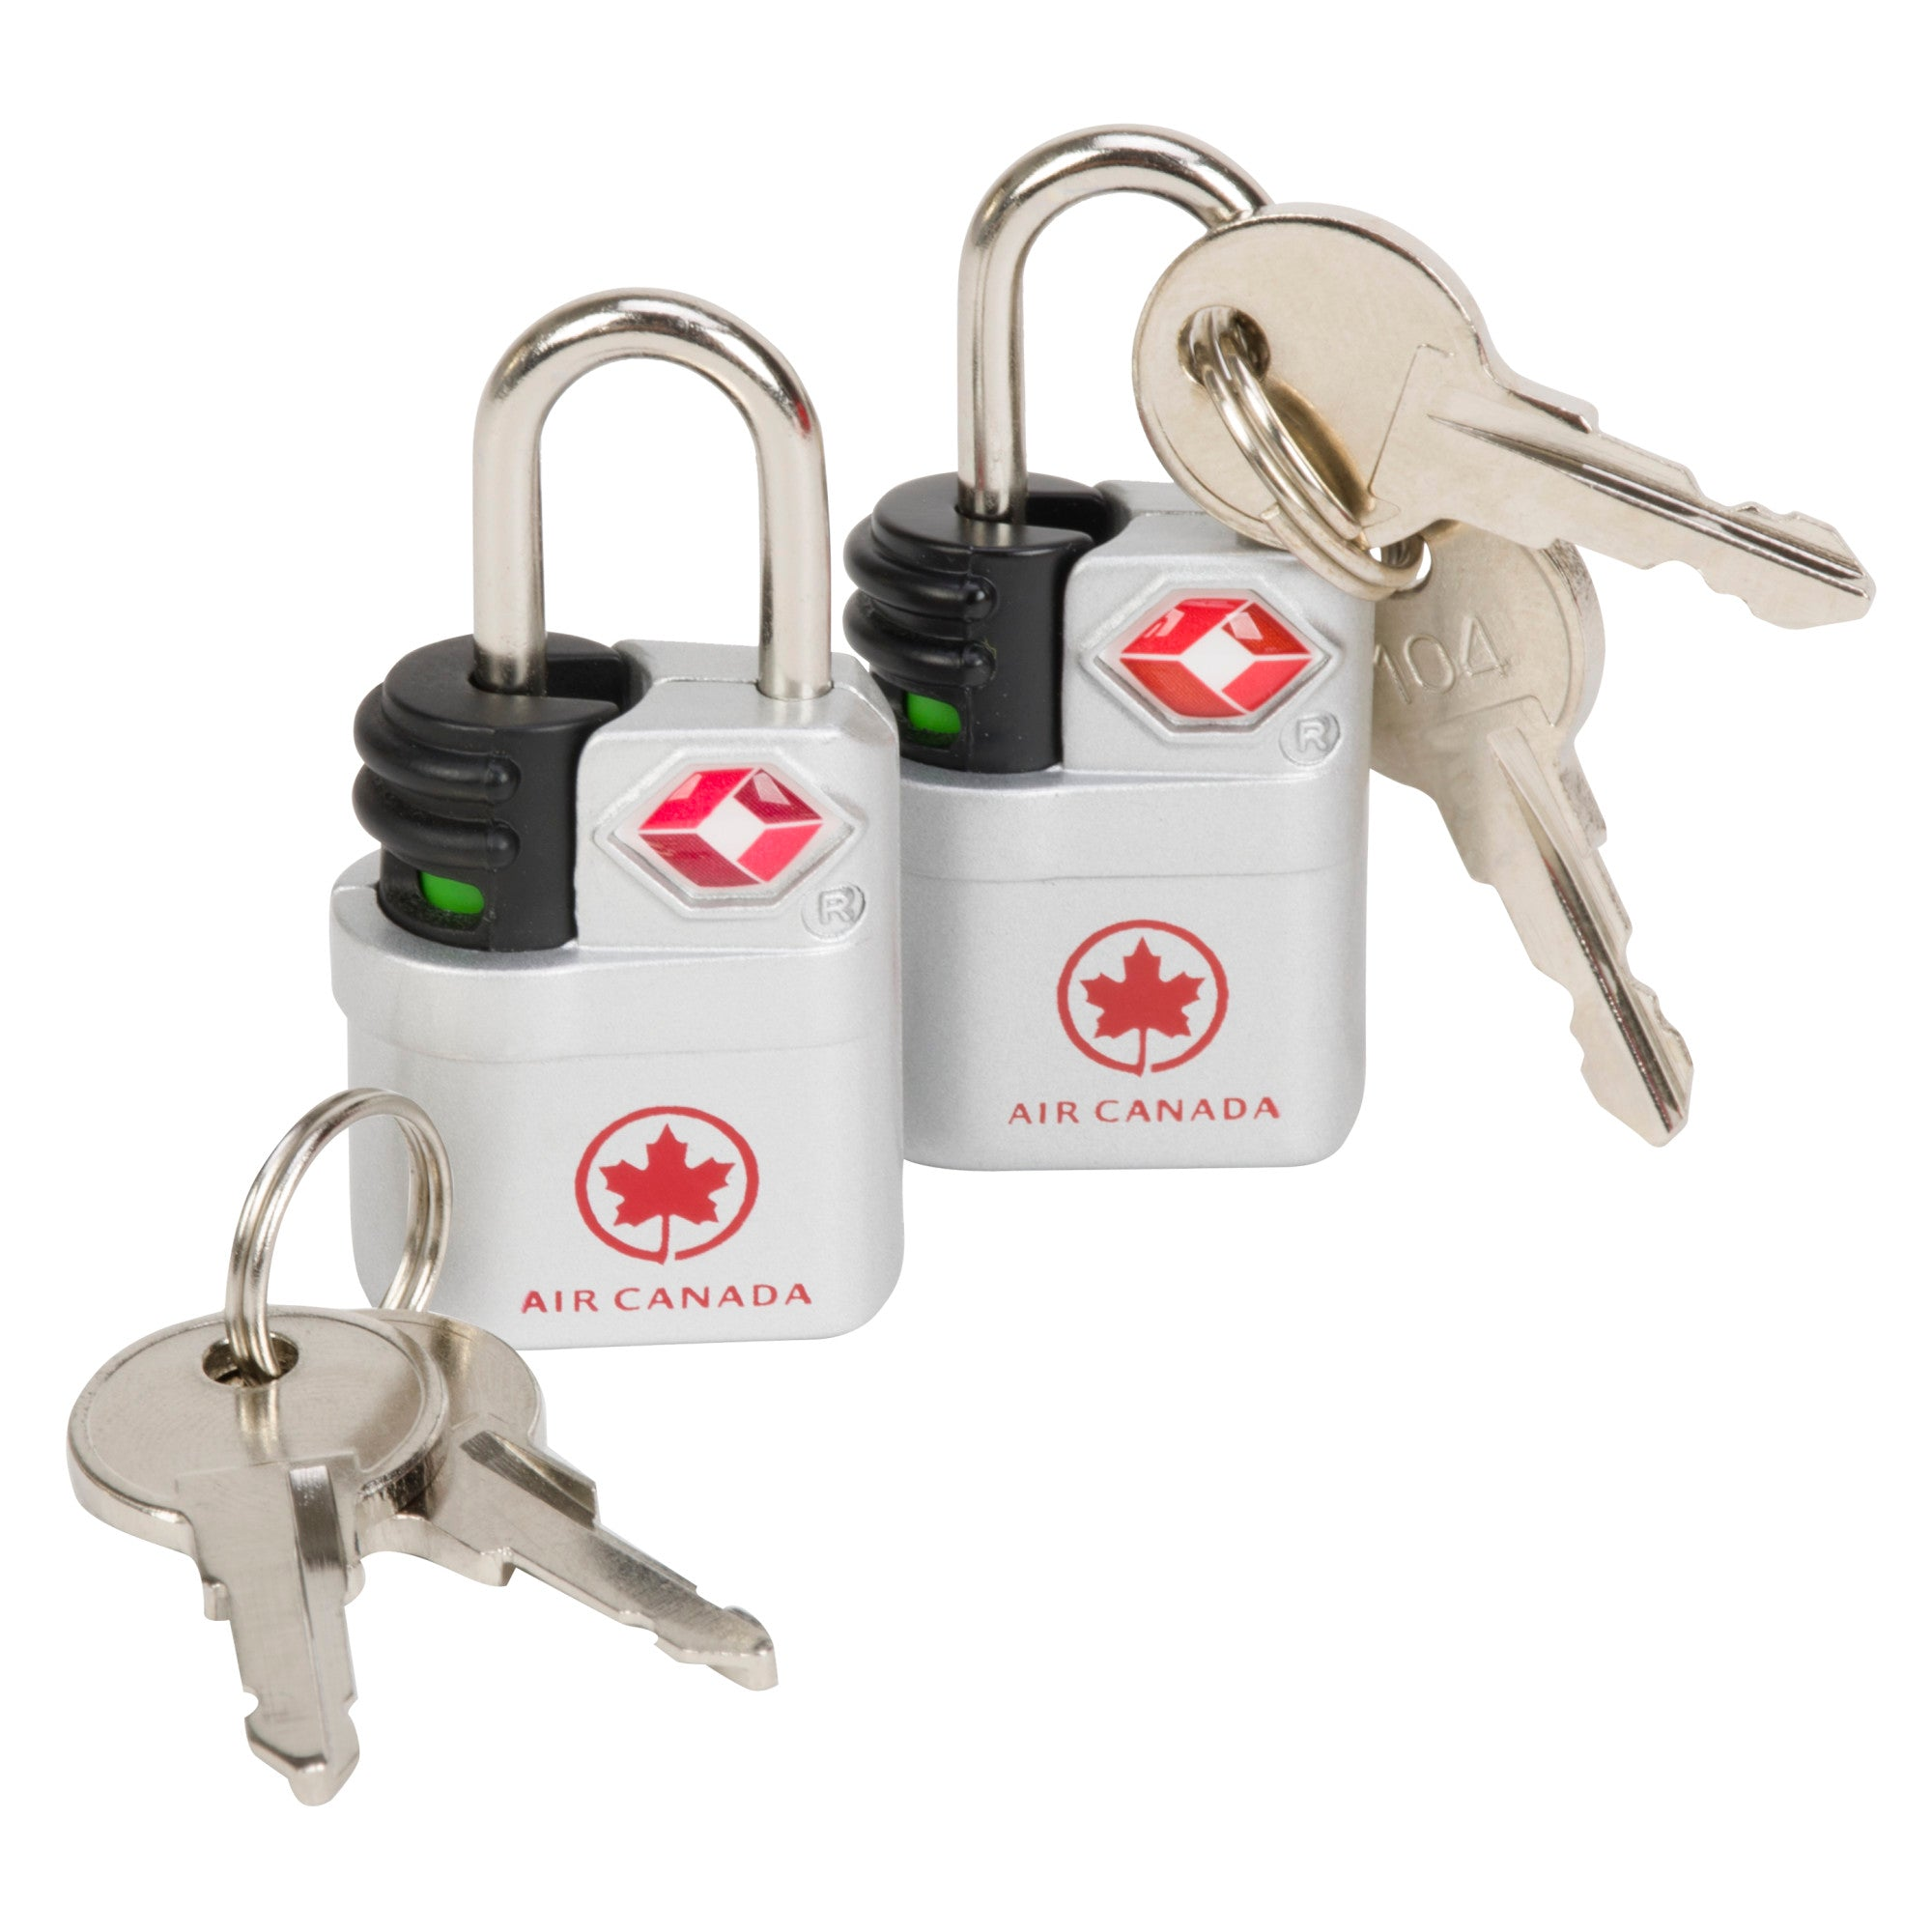 Air Canada Search Indicator Travel Sentry Key Lock (Set Of 2) - ACP4292SL